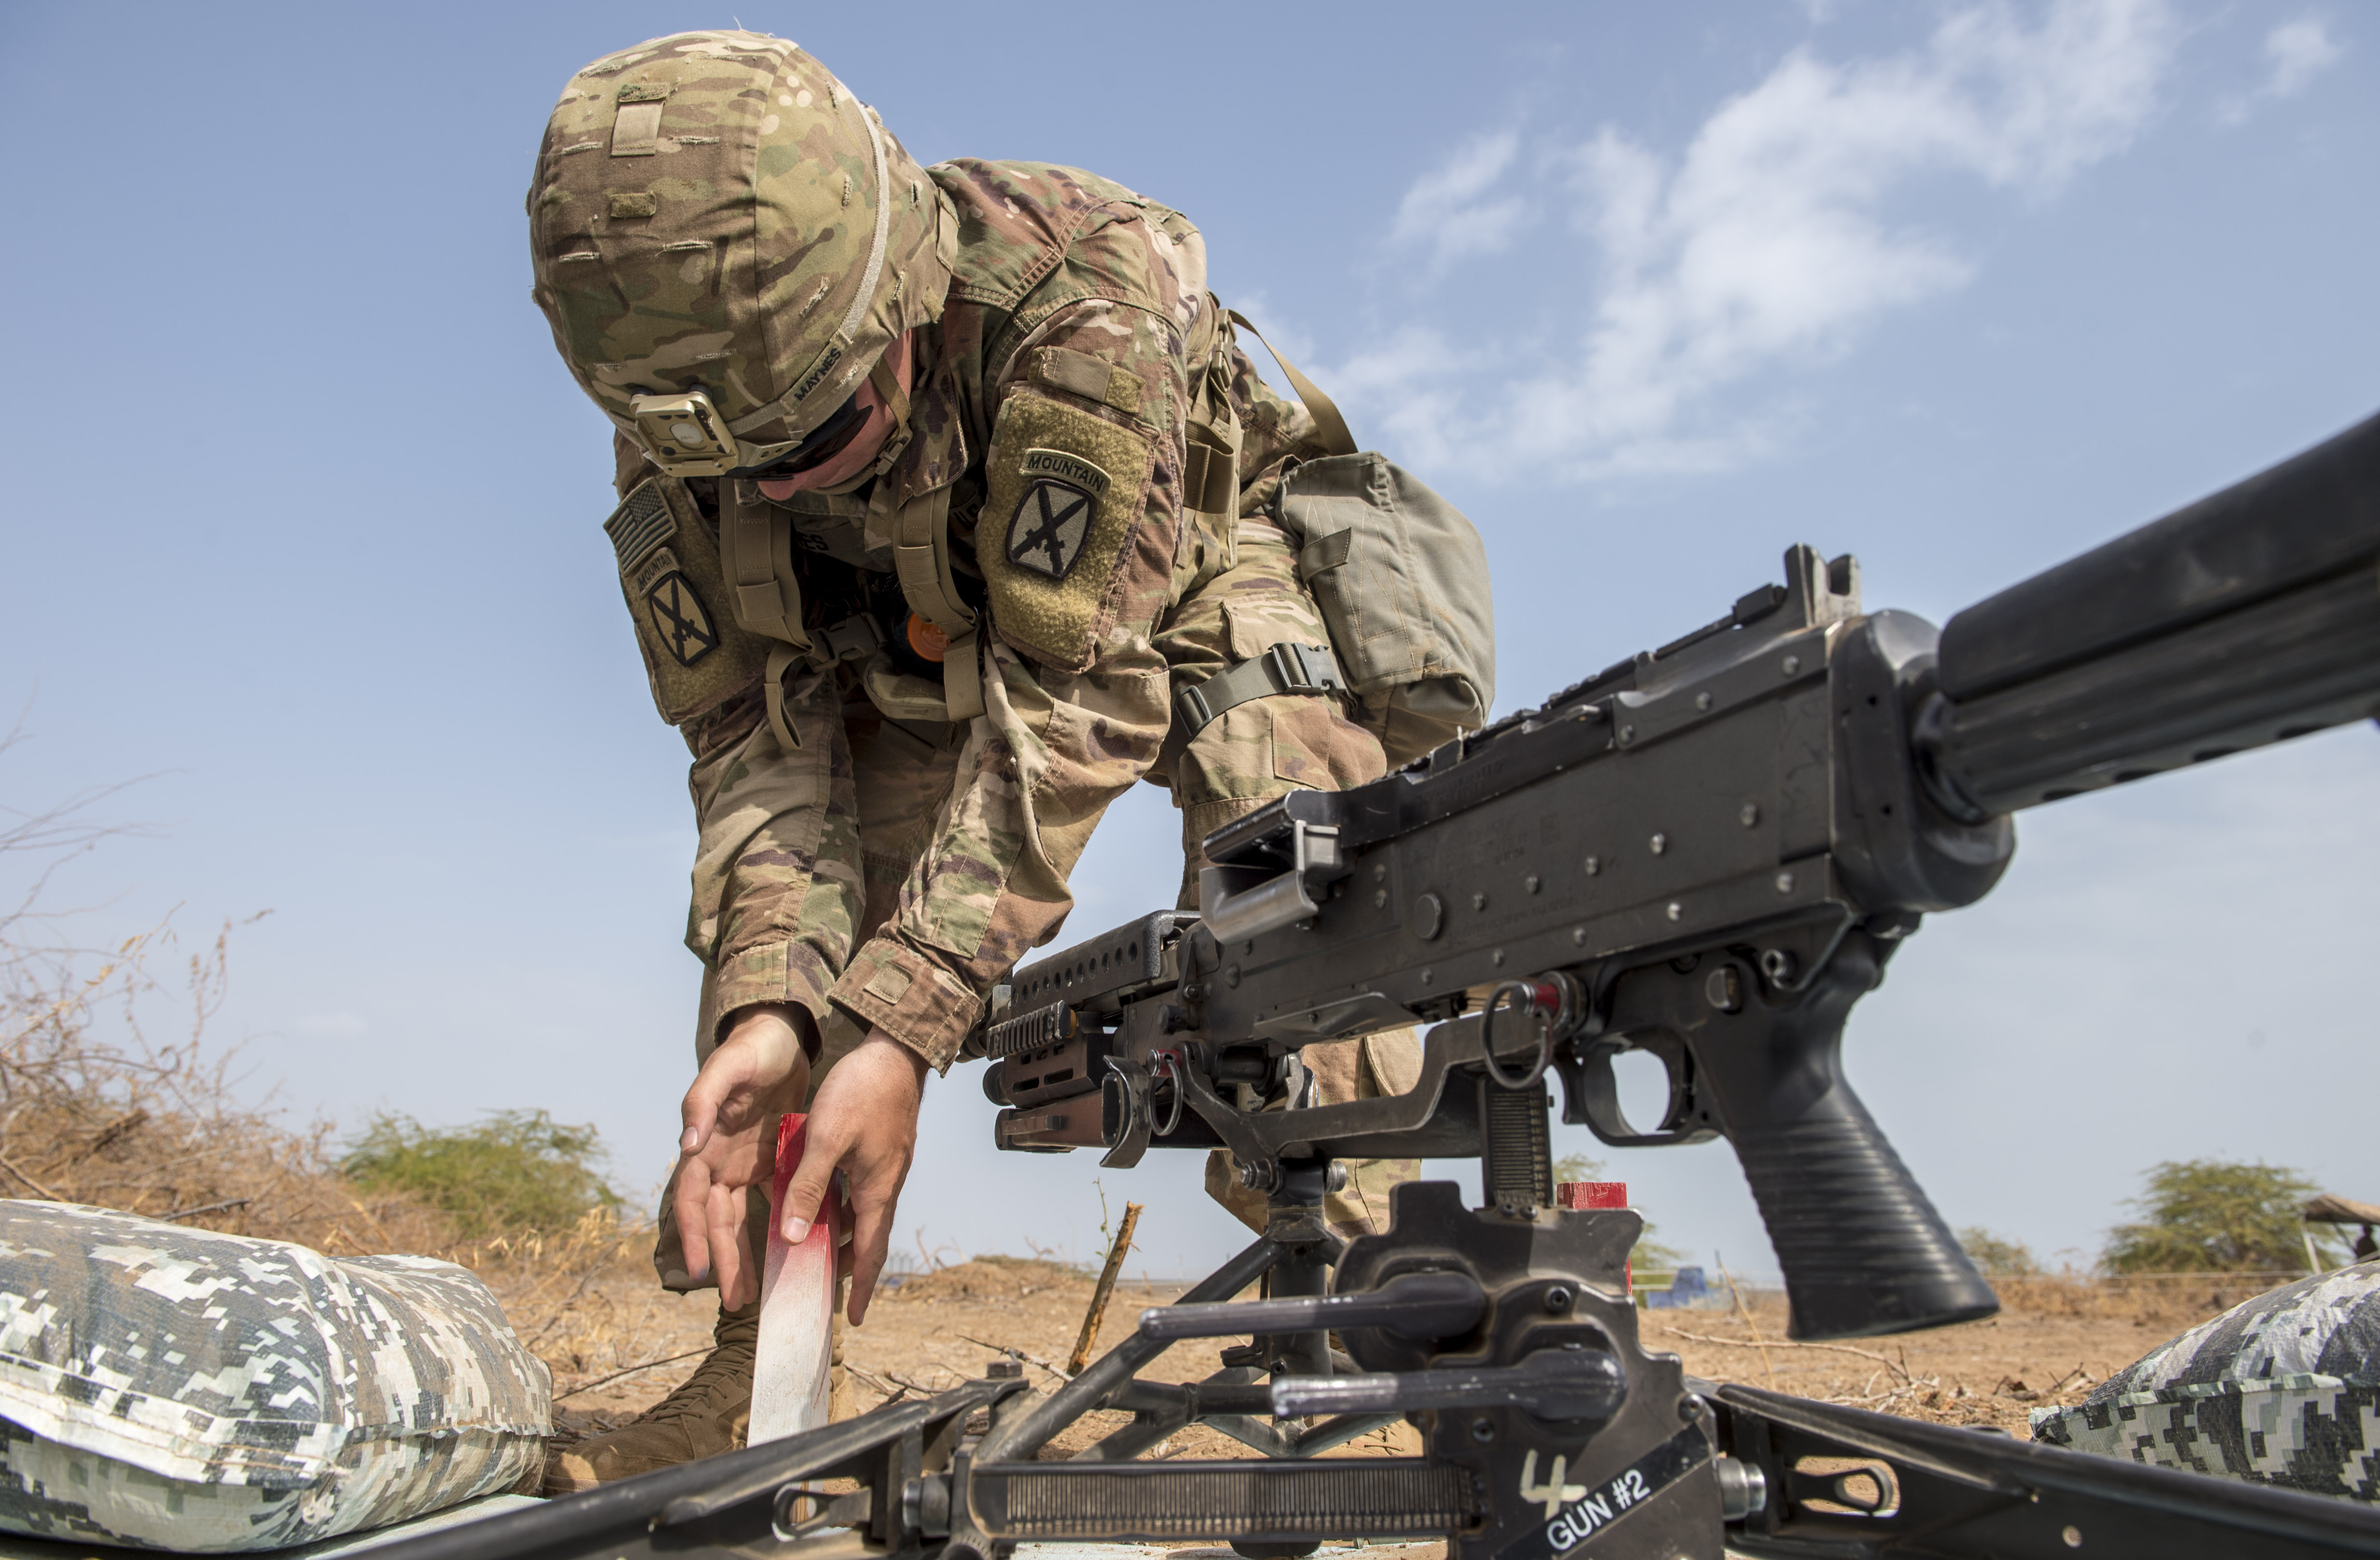 A U.S. Army Soldier assigned to Combined Joint Task Force - Horn of Africa puts a firing stake in the ground for a mounted M240B machine gun during training for an Expert Infantryman Badge evaluation at Camp Lemonnier, Djibouti, Jan. 24, 2018. The stake is used as a reference point for the firing zone as he prepares to set up a defensive position. After two weeks of training and five days of testing, 50 Soldiers completed the process to earn the coveted special skills badge that requires Soldiers to perform an Army Physical Fitness Test, day and night land navigation, a 12-mile forced march, and 30 individual tasks covering weapons, medical, and security patrol skills. (U.S. Air Force photo by Staff Sgt. Timothy Moore)